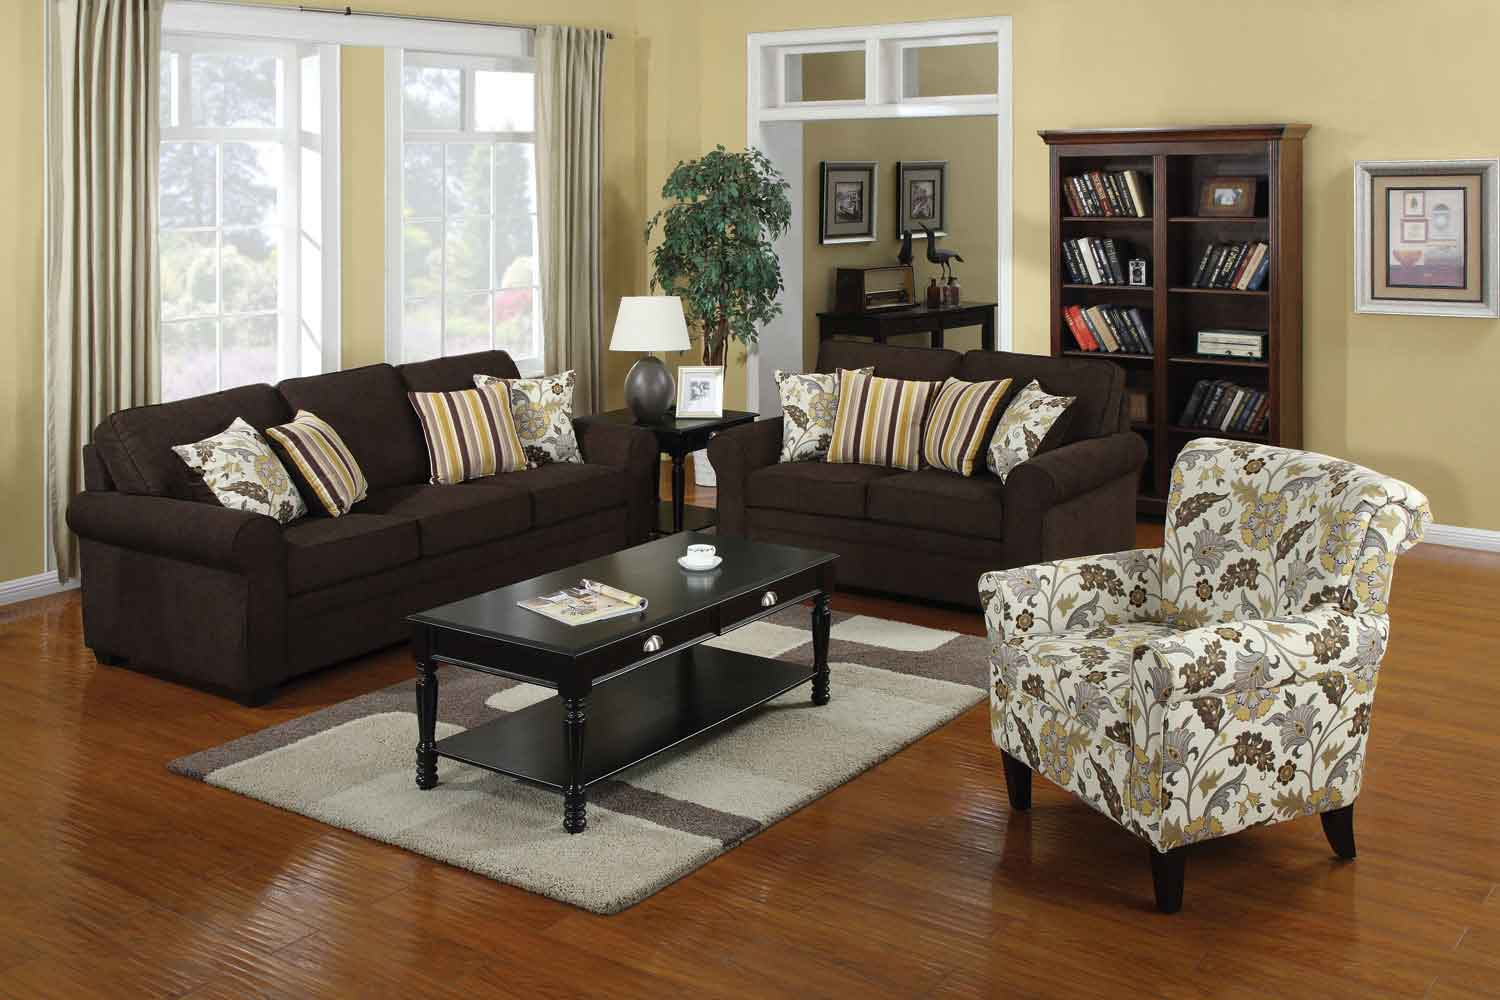 Coaster rosalie living room set brown black 504241 for Living room furniture companies